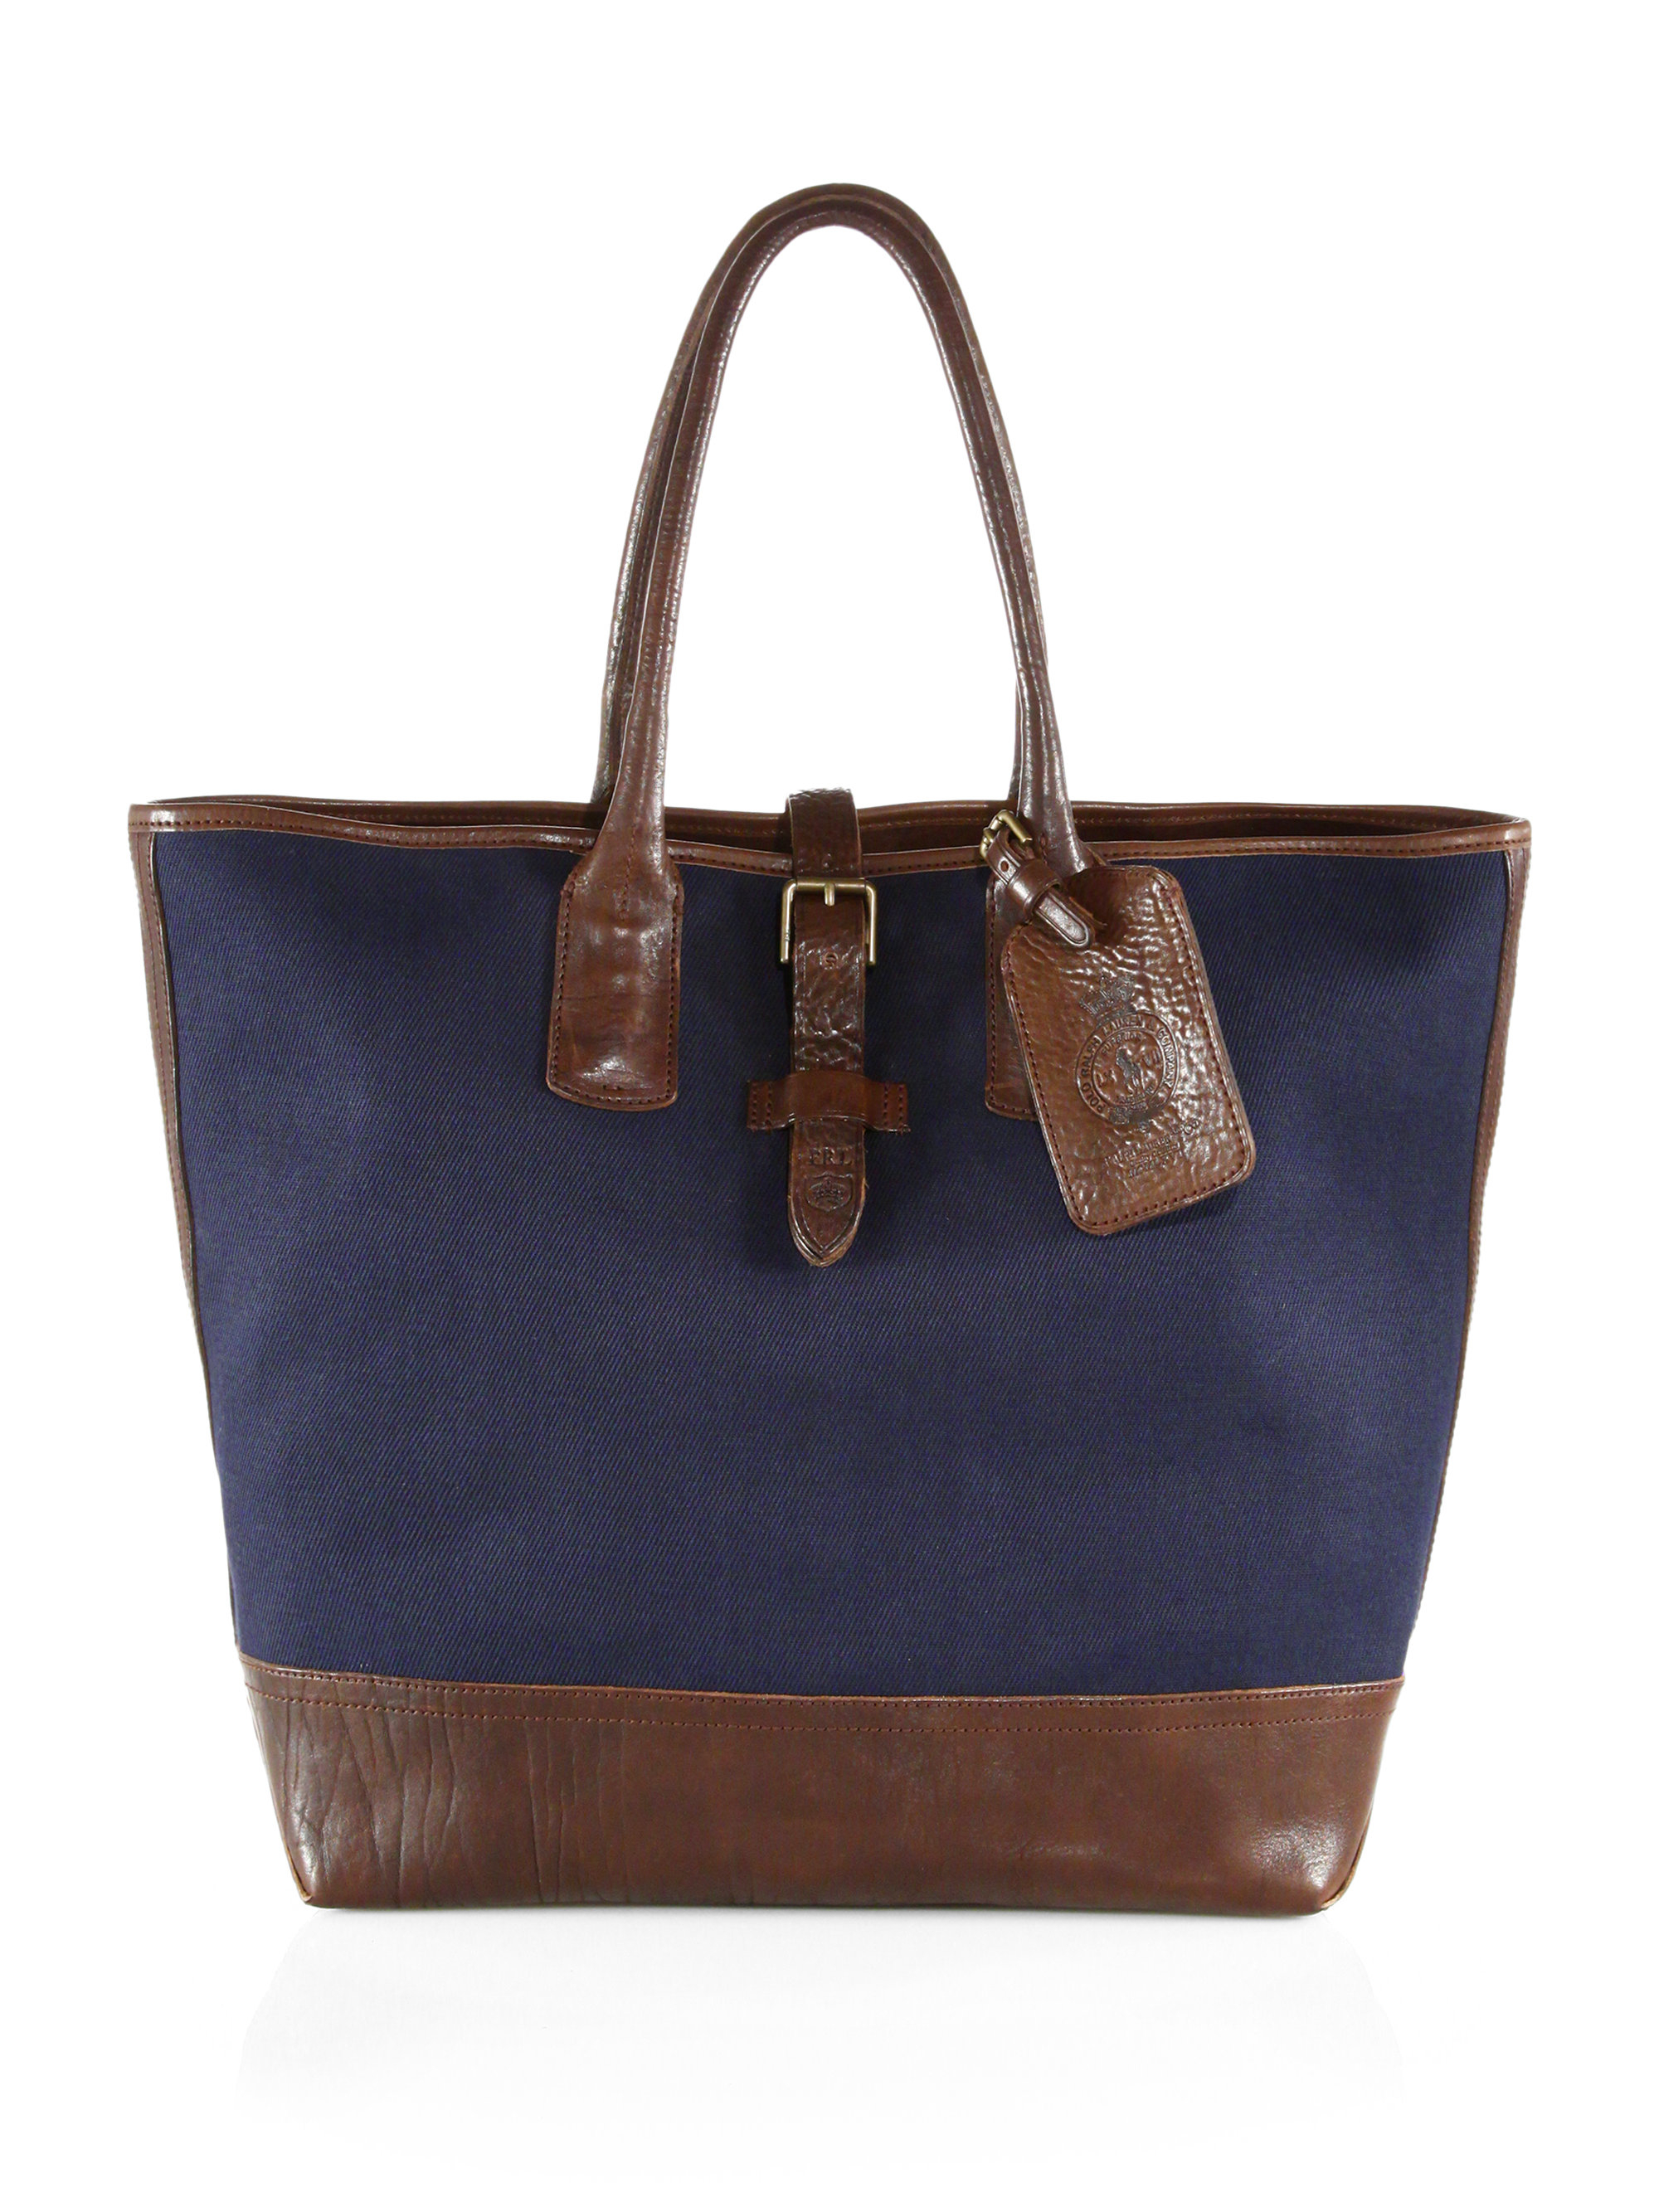 691deb1194 ... new zealand lyst polo ralph lauren canvas tote bag in blue for men  45f96 66e7f ...